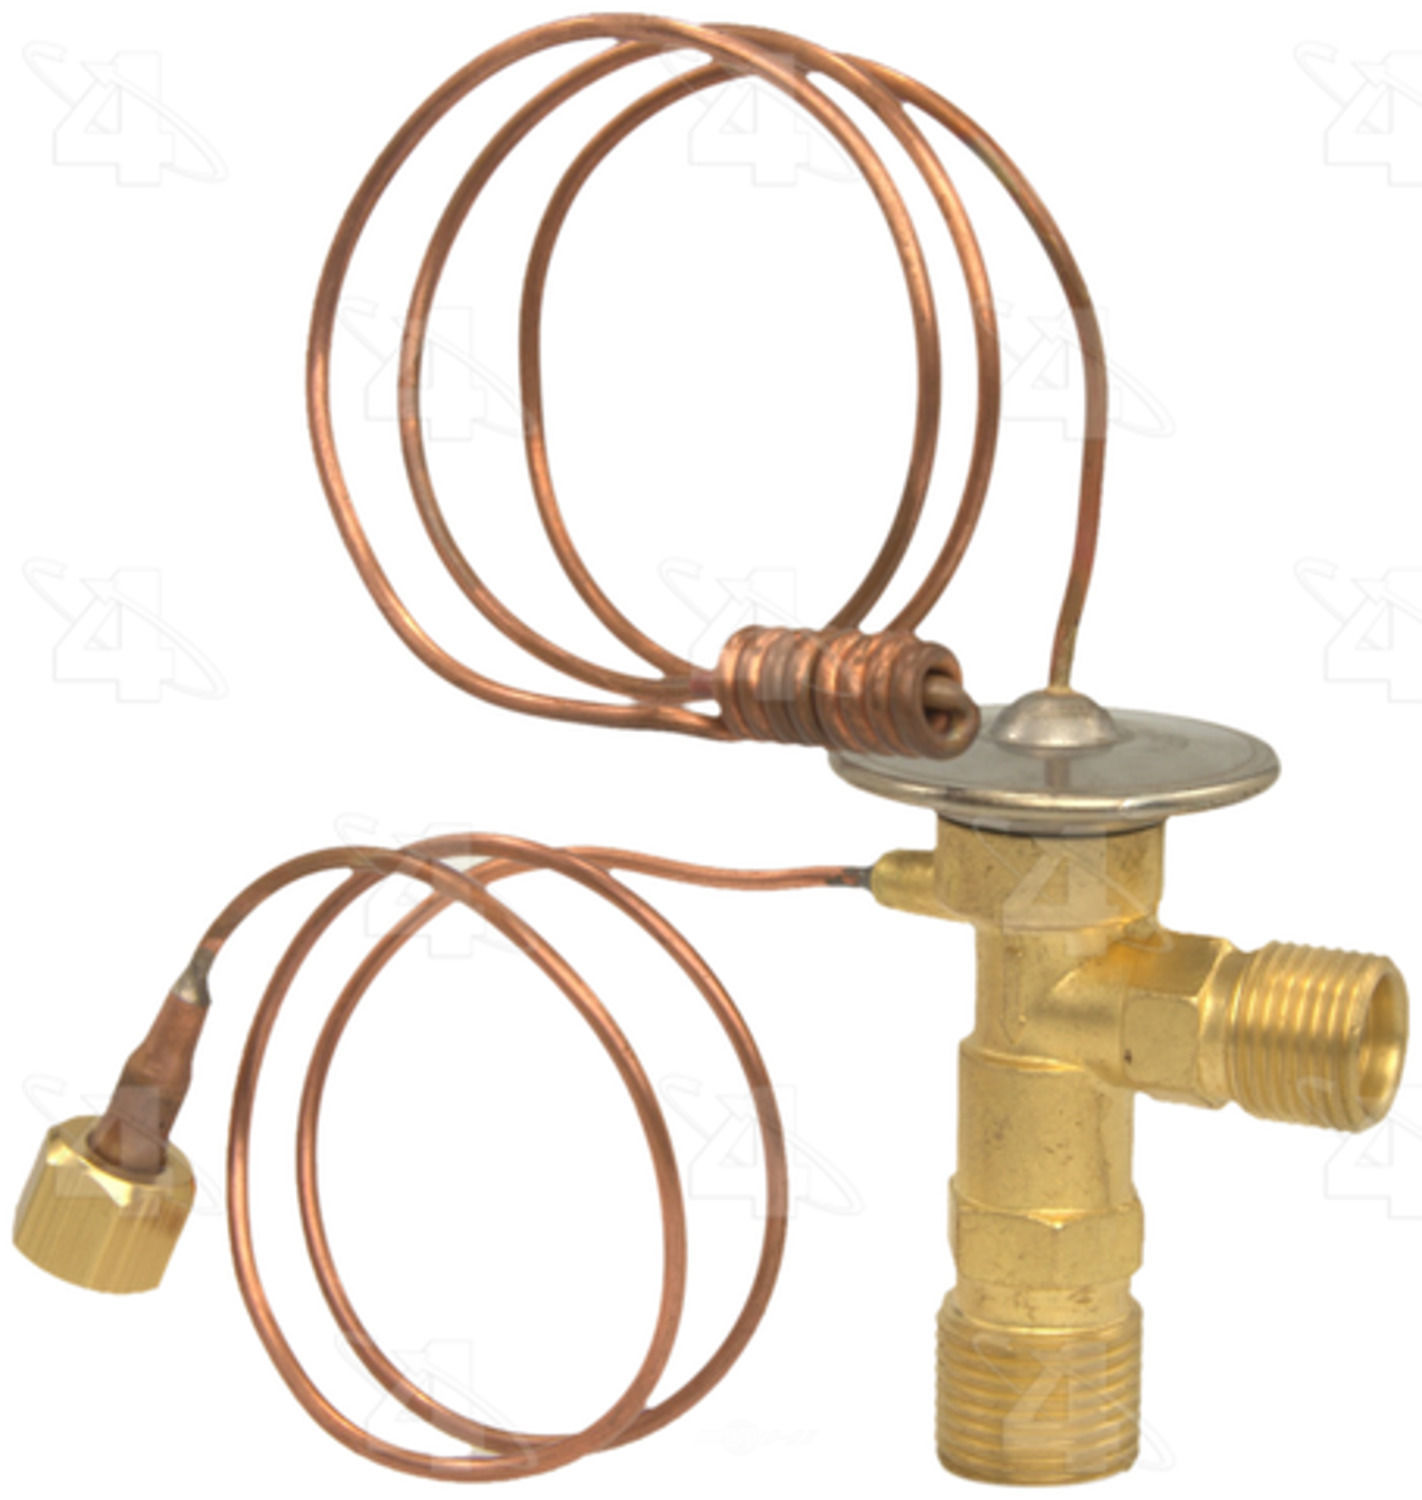 4 Seasons 38610 - O-Ring Expansion Valve - 38610